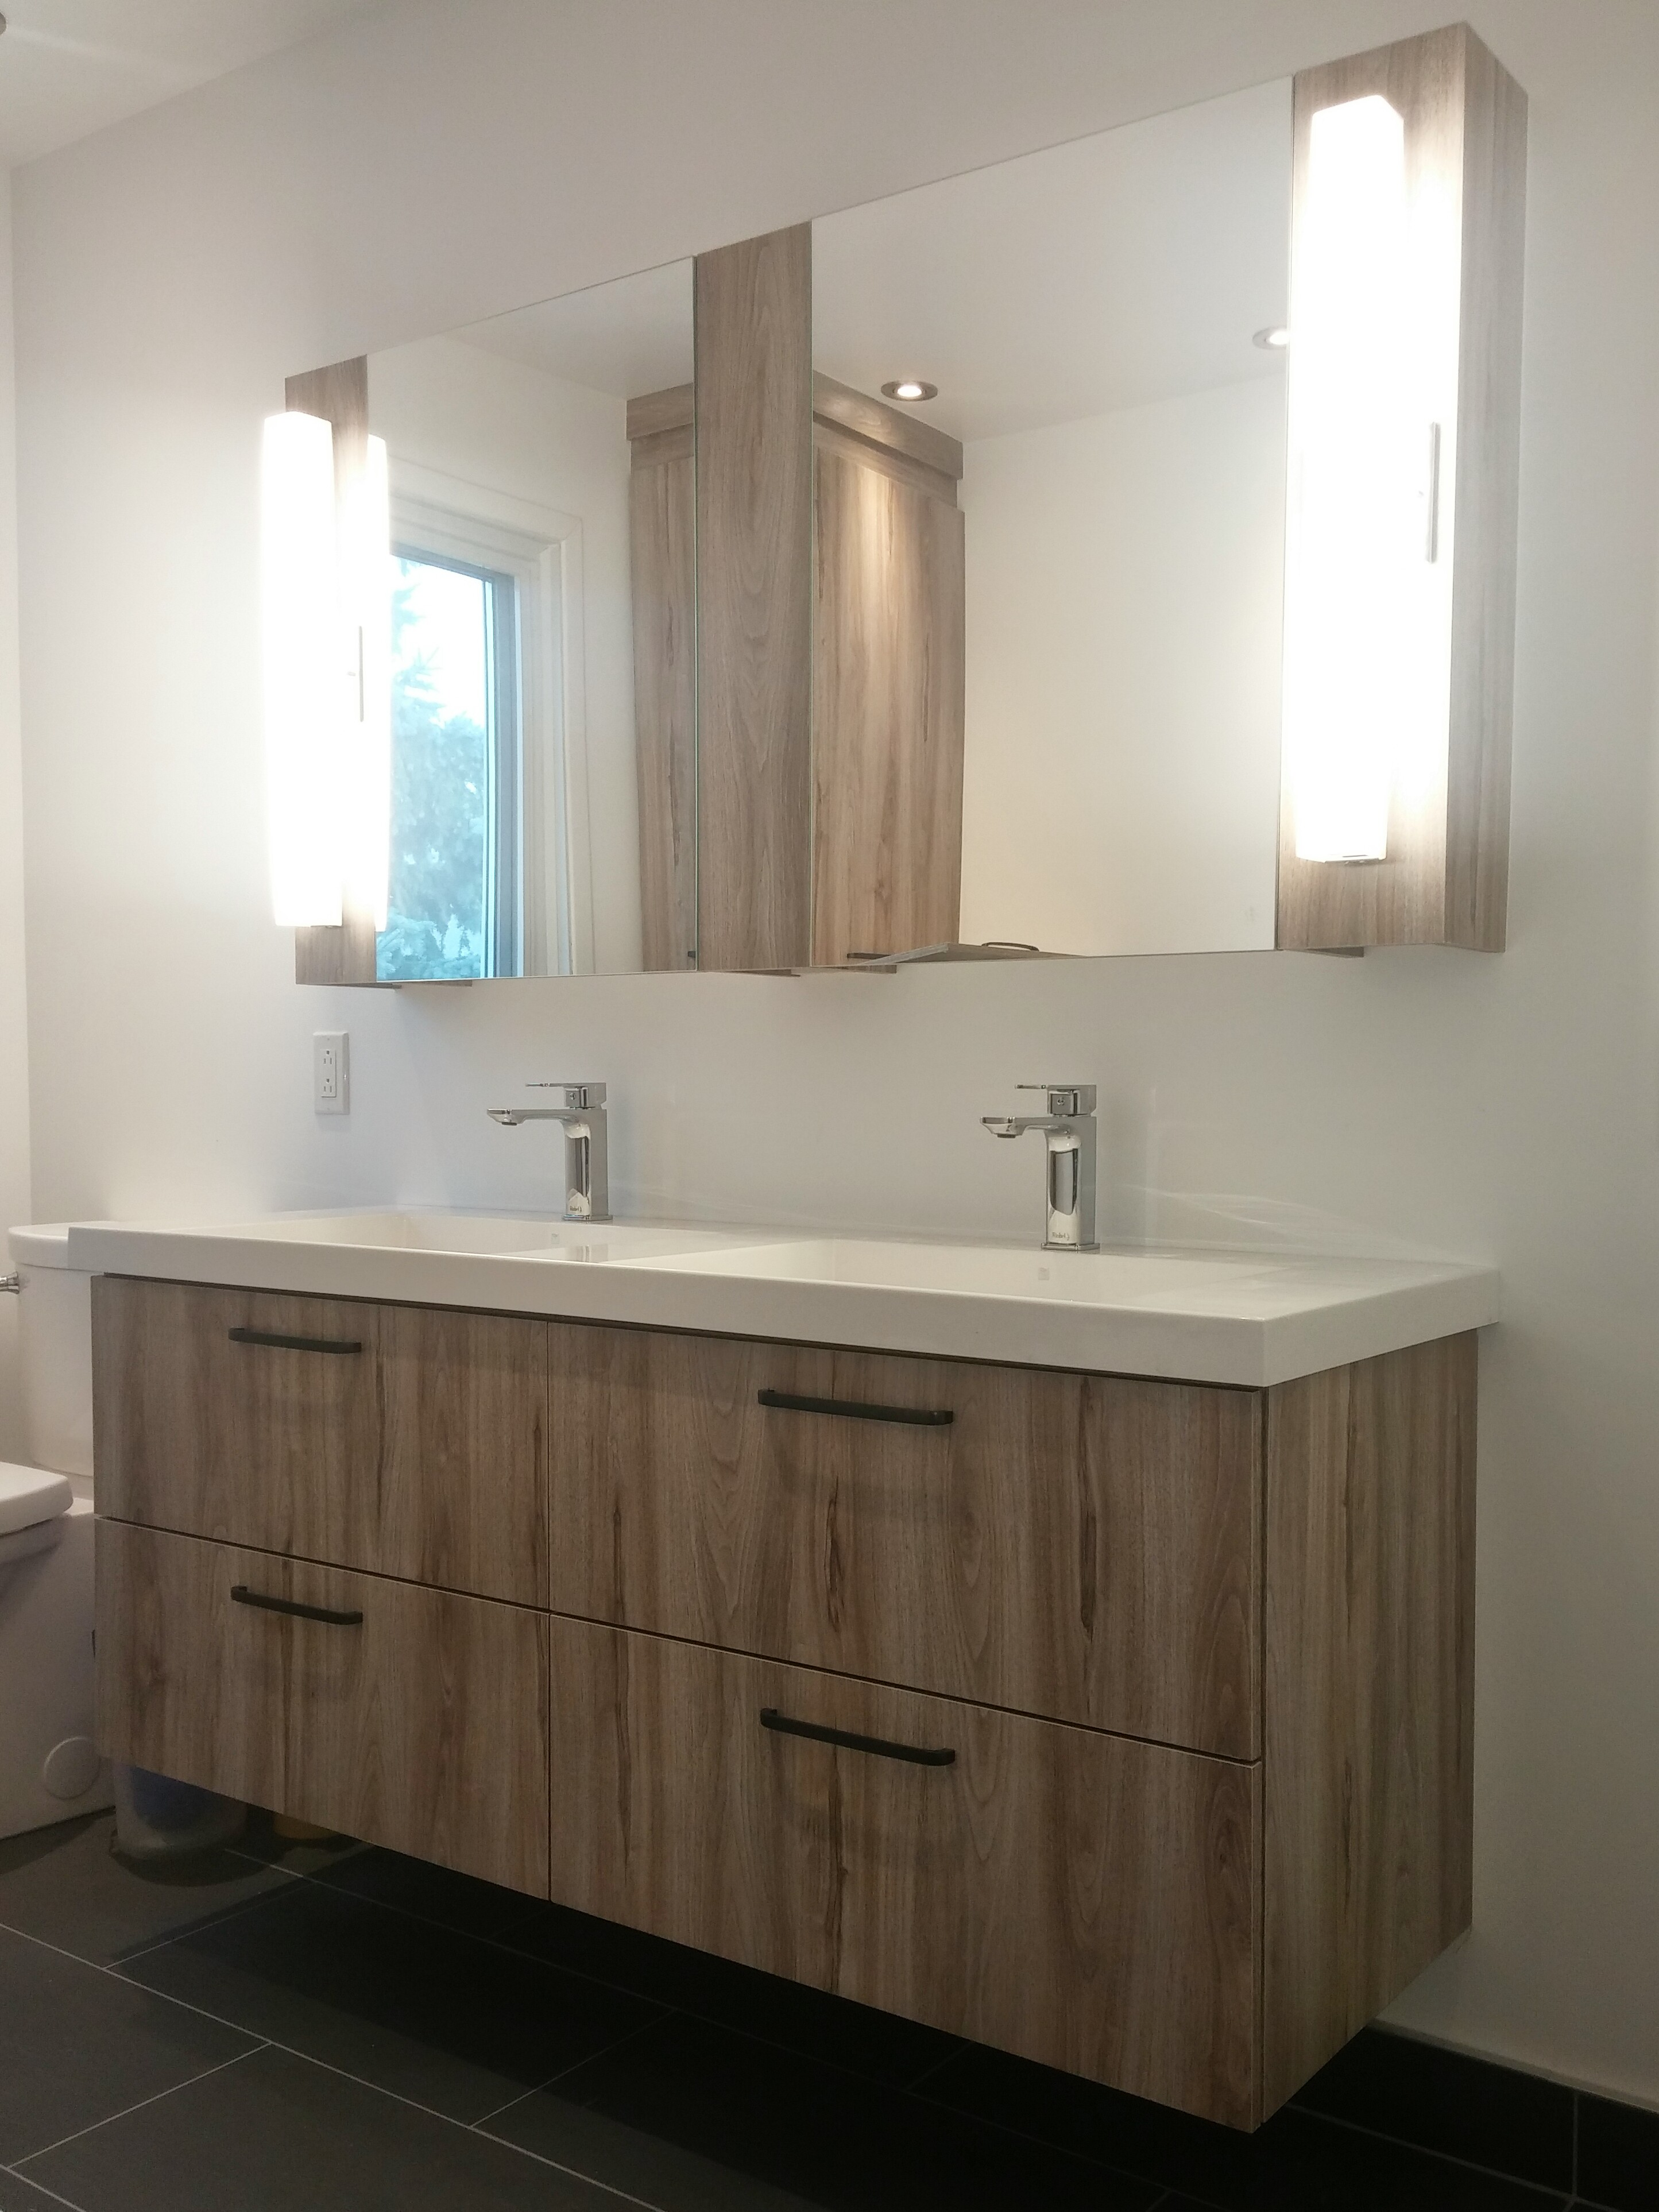 Beautiful Vanite Salle De Bain A Vendre Images - House Design ...